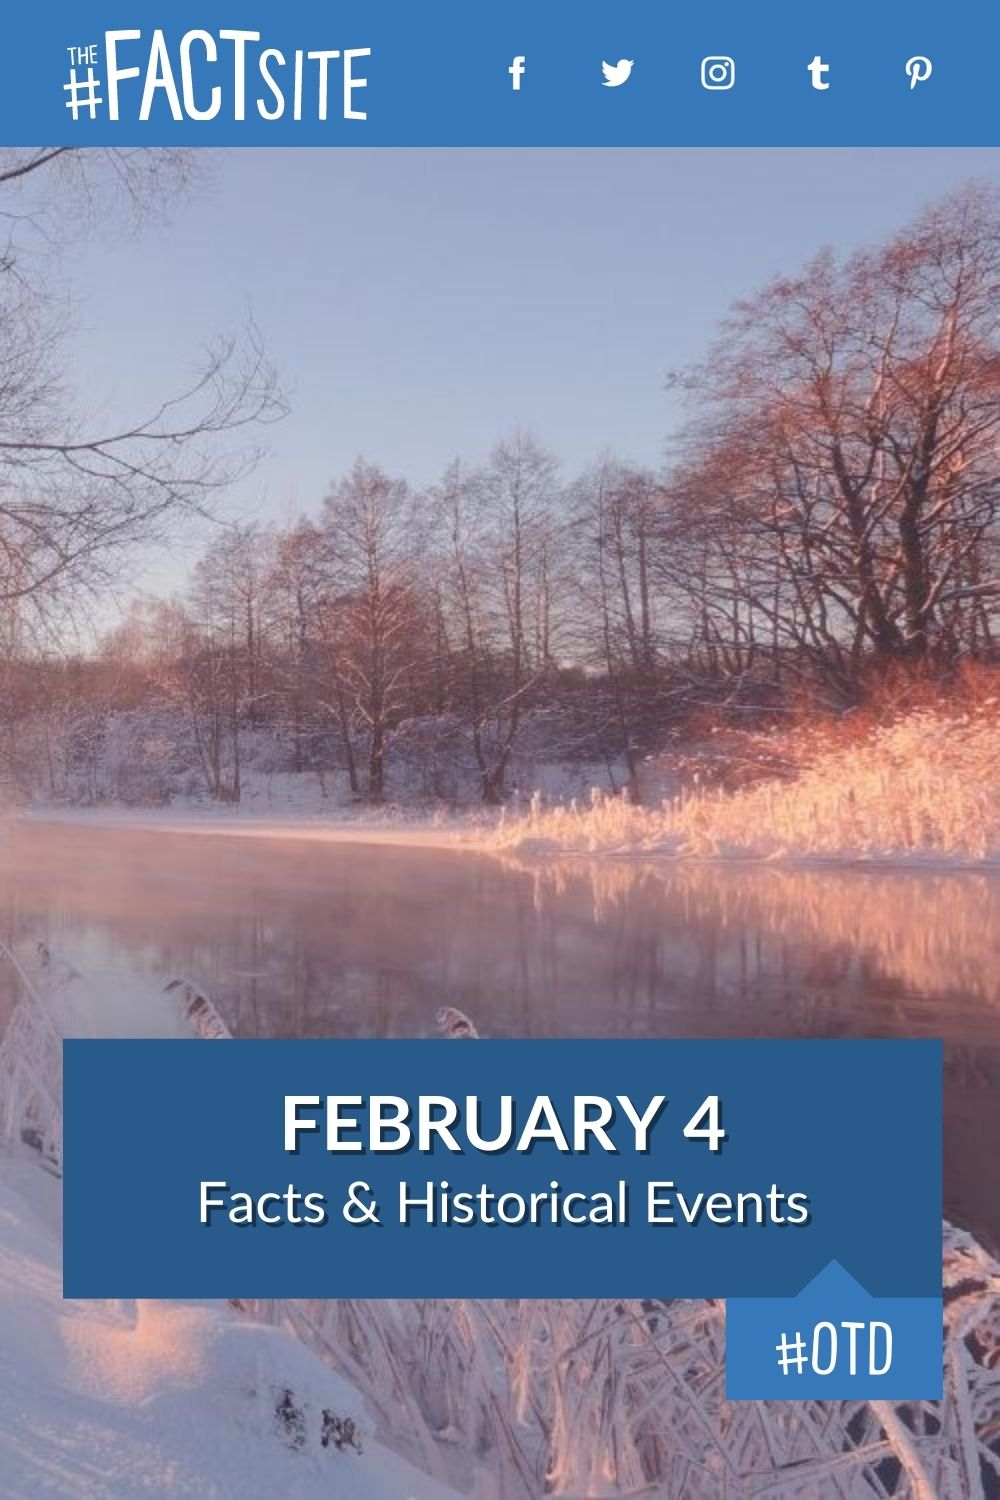 Facts & Historic Events That Happened on February 4